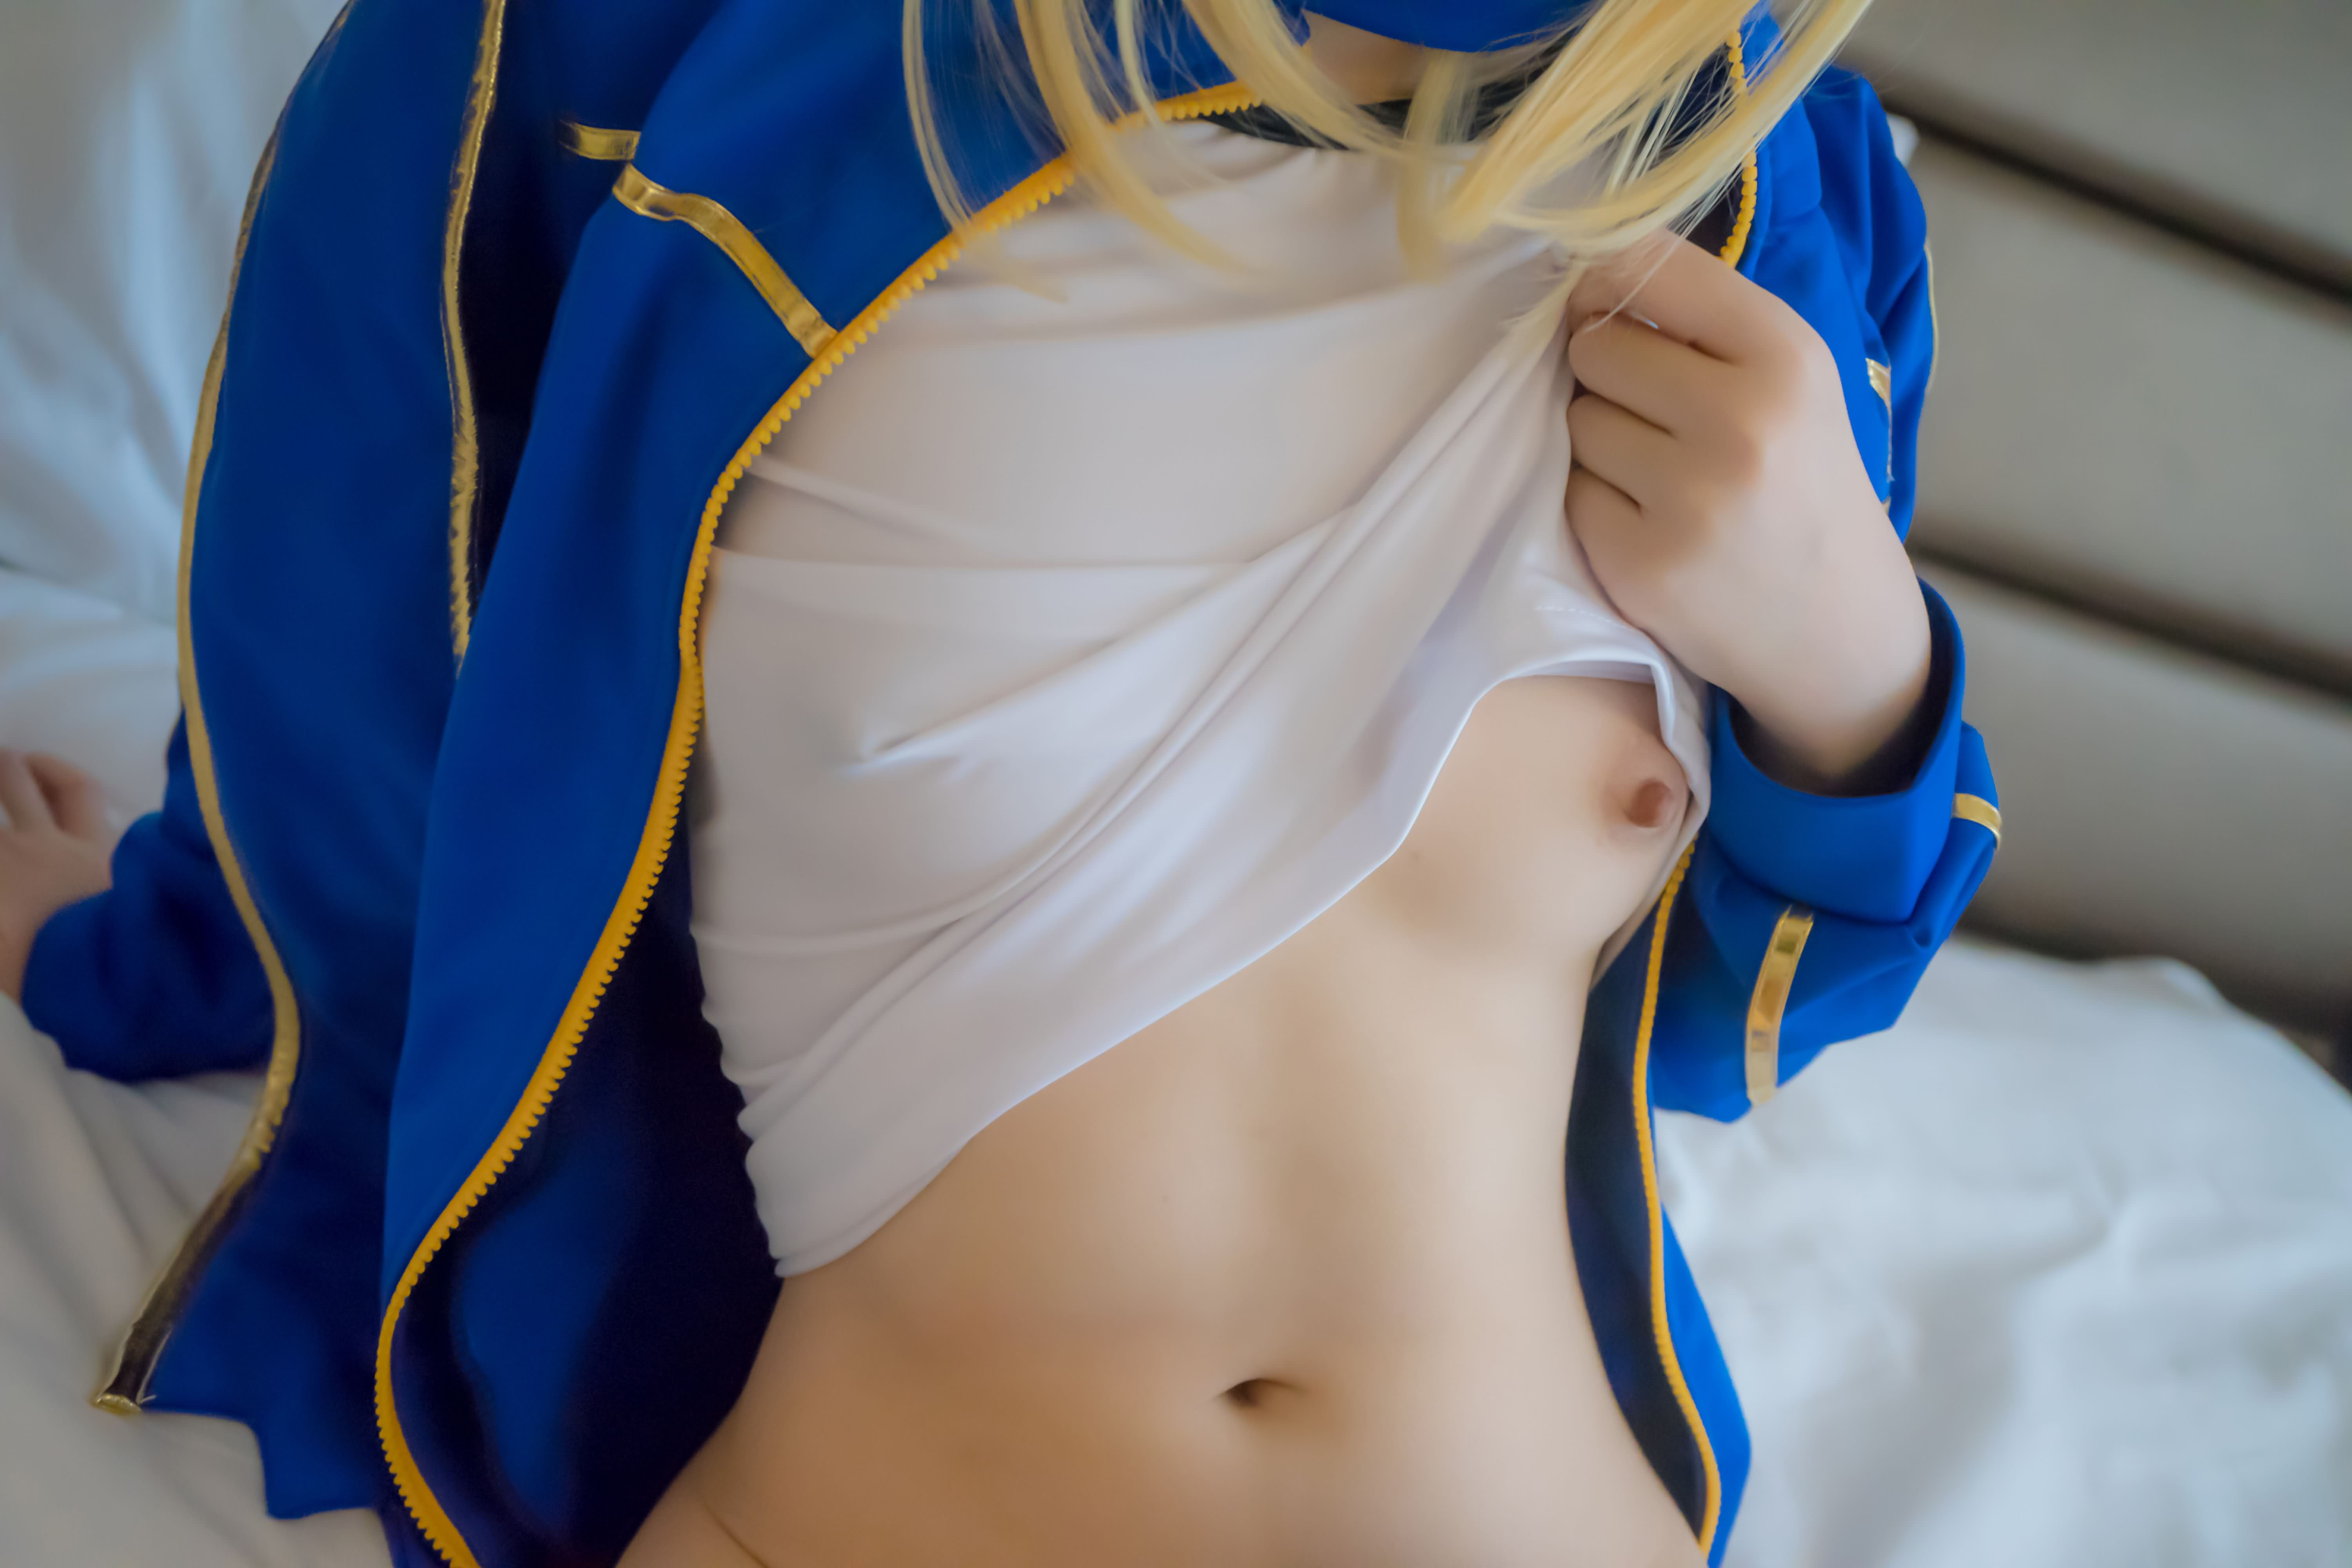 NgXiyY - 【The Girl Theater】【少女映画】 Cosplay Fate/Grand Order  Mysterious Heroine X Alter 謎のヒロインX 78P